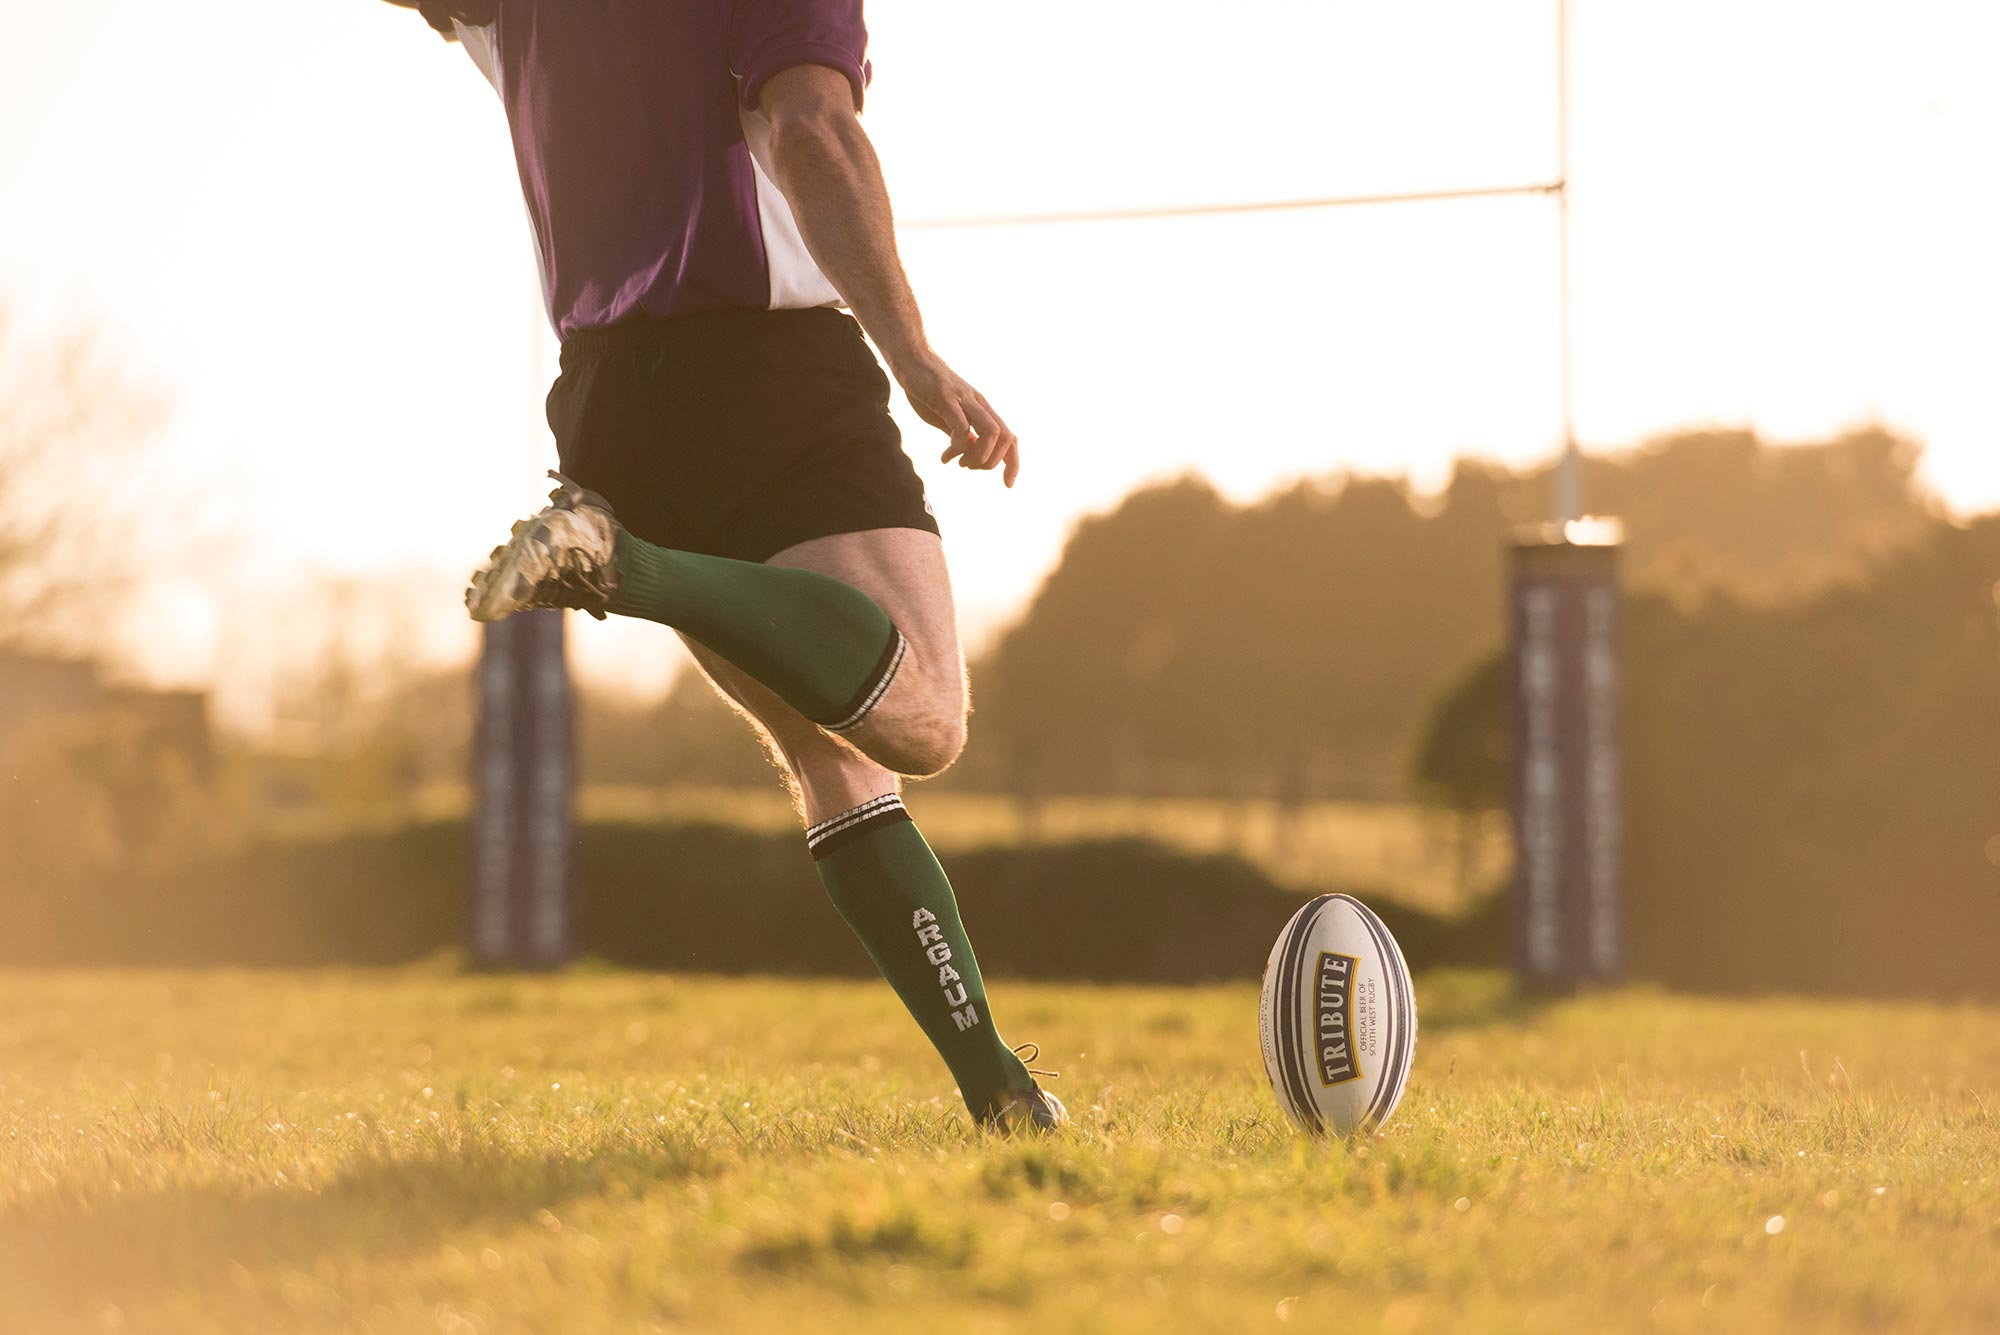 Rugby kick in the sun